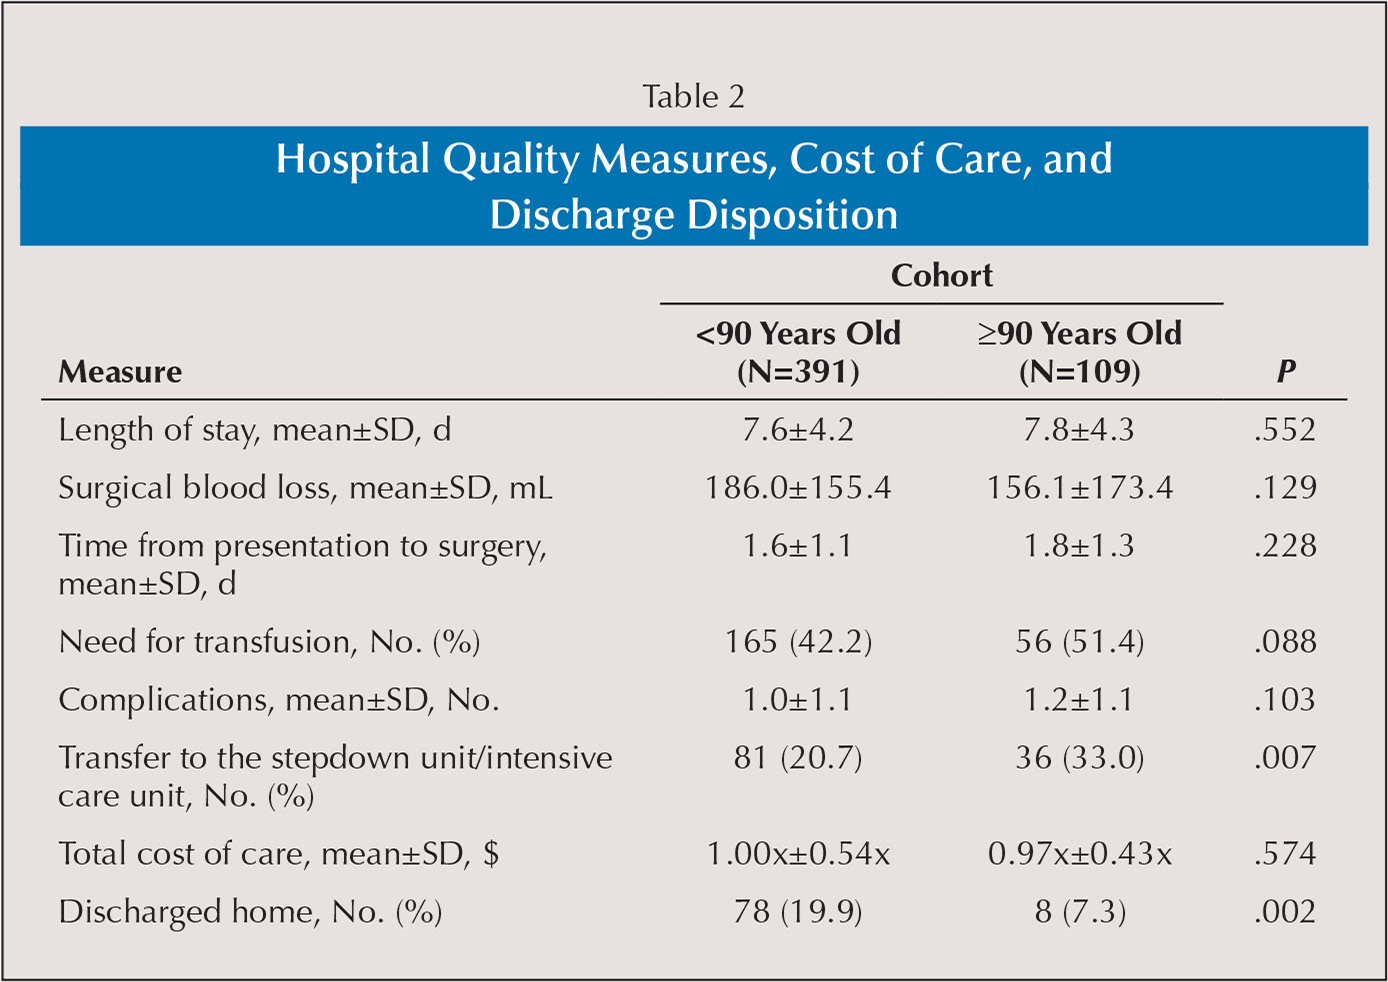 Hospital Quality Measures, Cost of Care, and Discharge Disposition